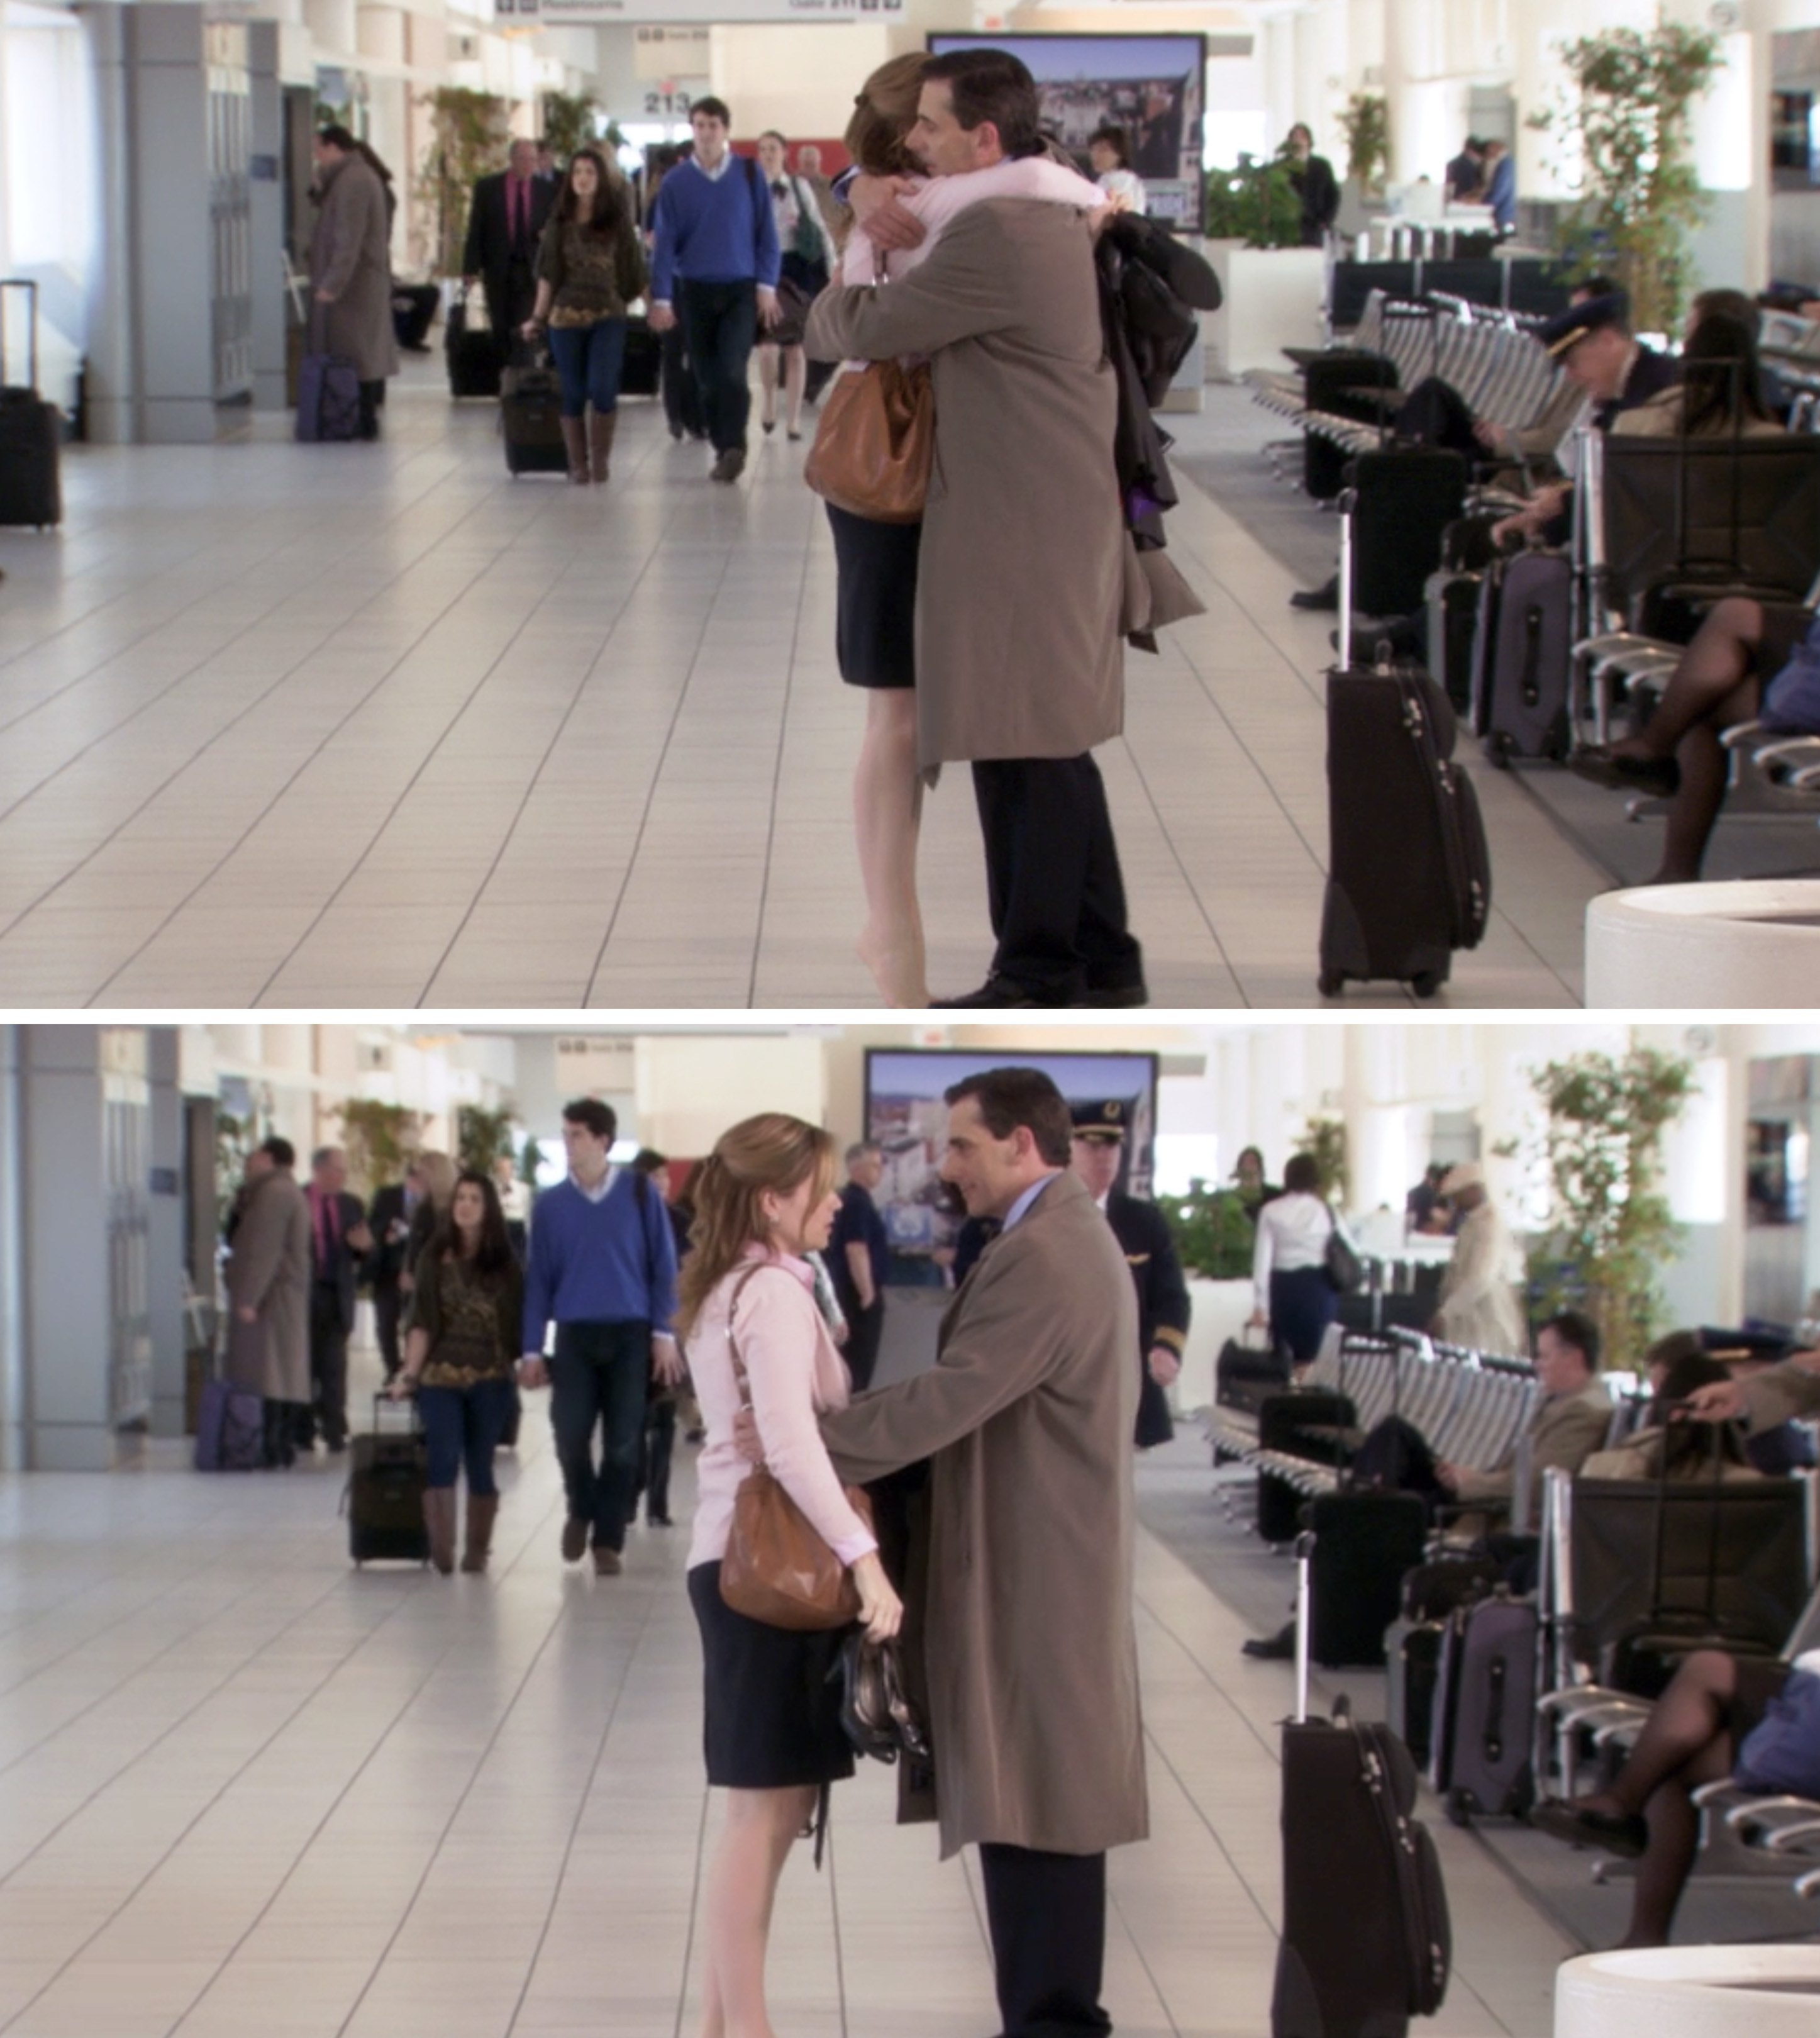 Pam and Michael hugging at the airport